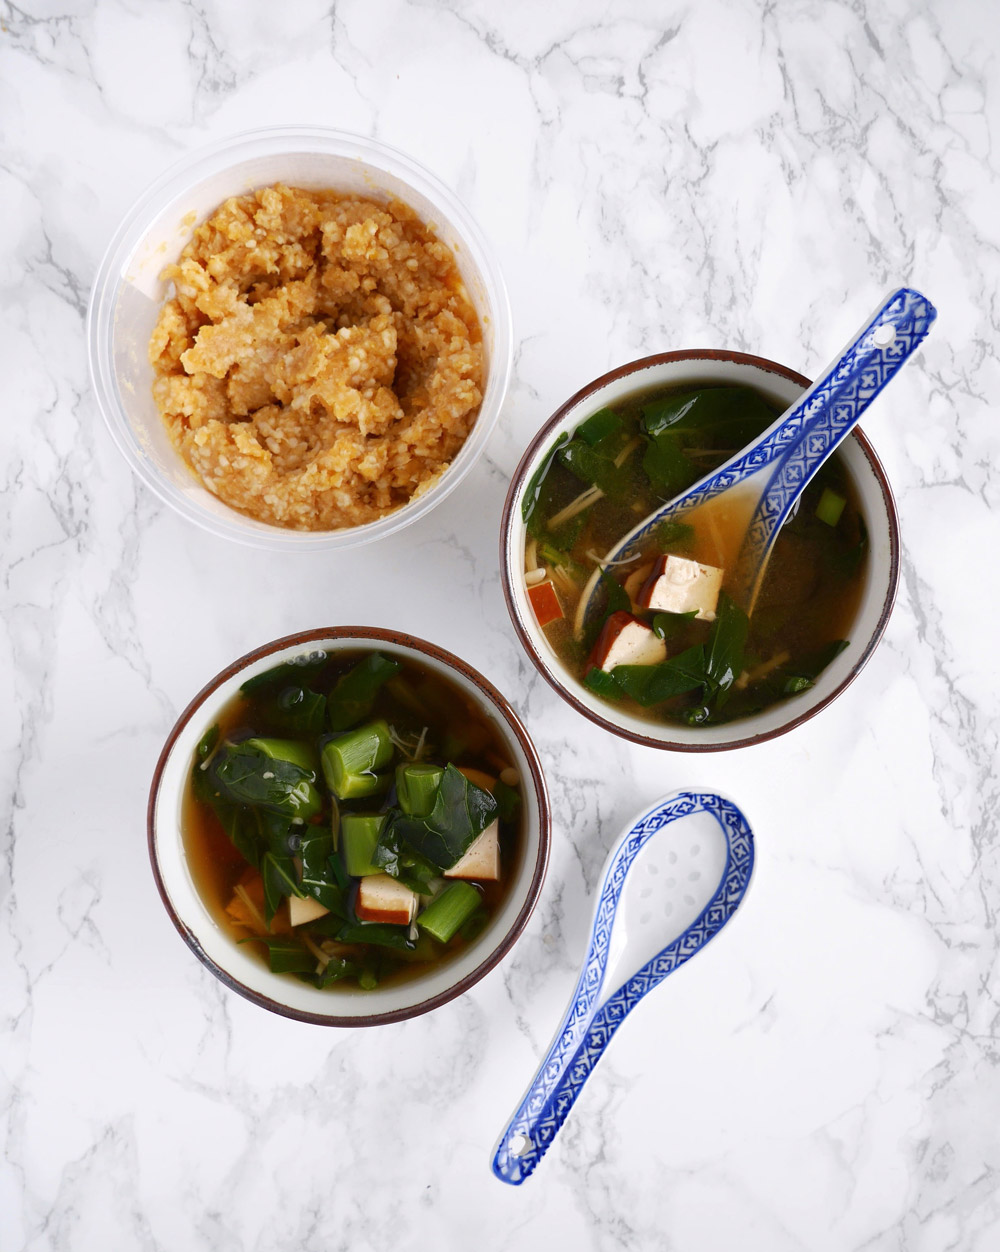 Chickpea Miso Soup with Beancurd and Chinese Broccoli